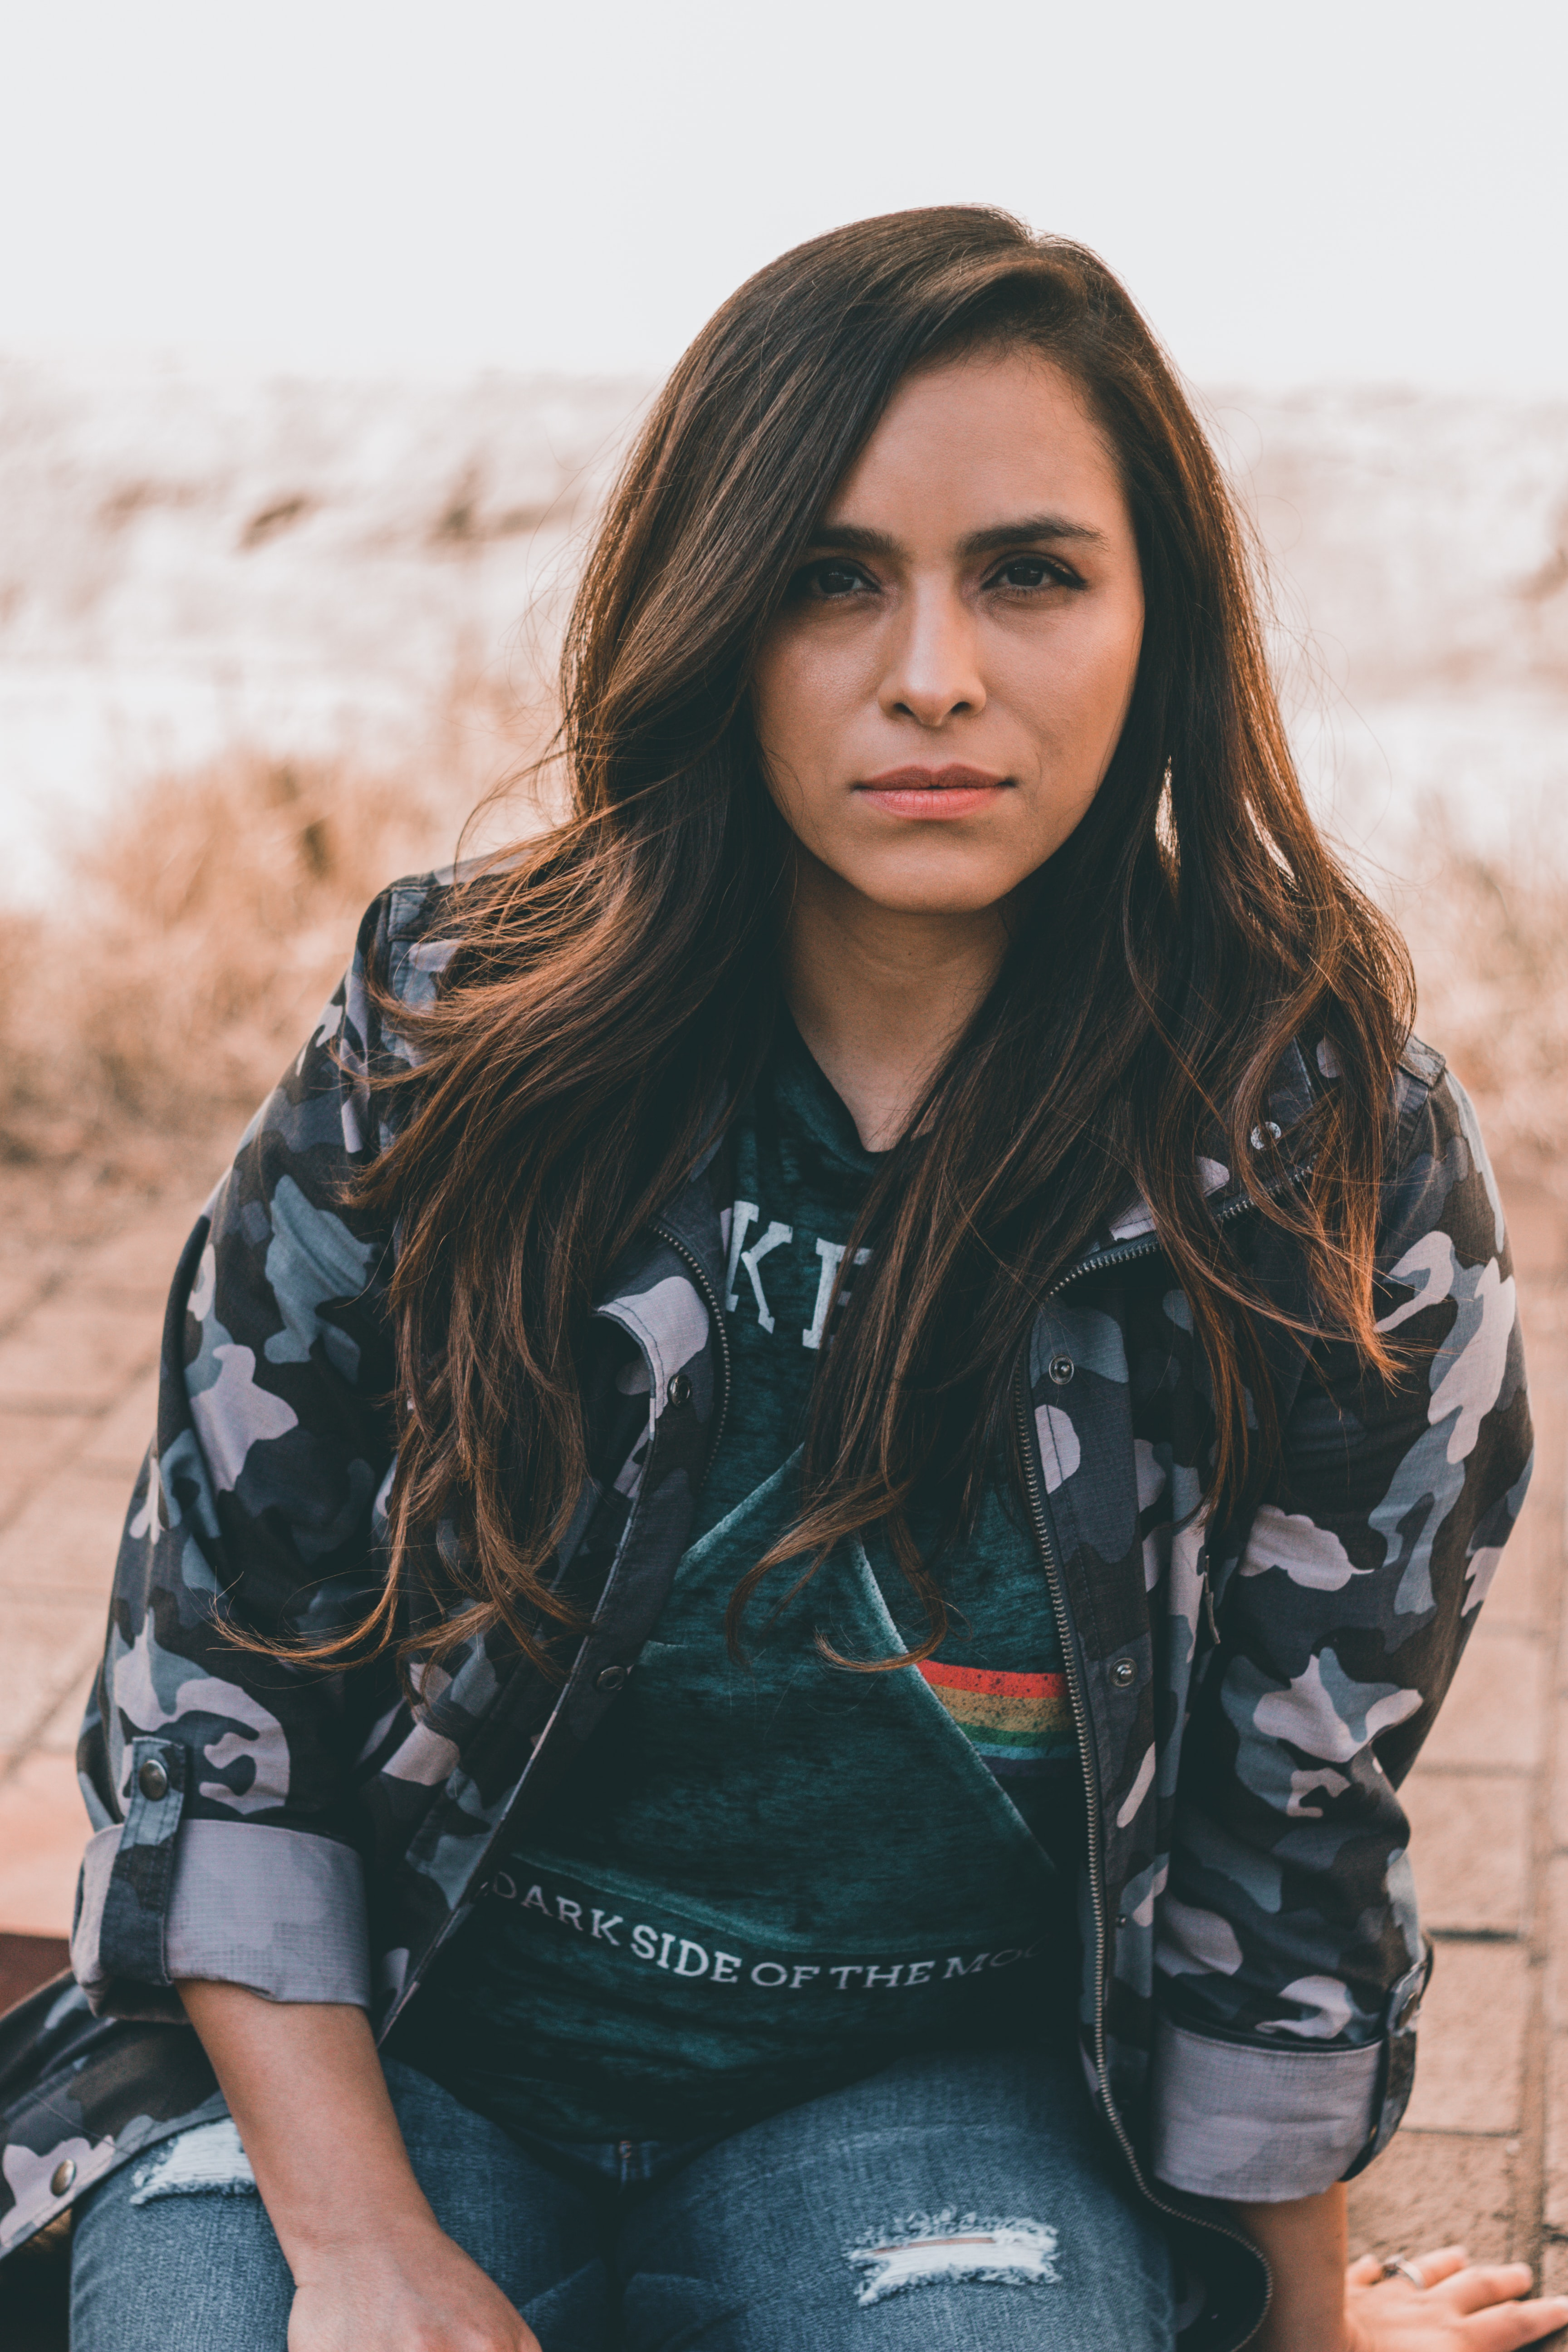 women's black, white, and green camouflage zip-up jacket sitting on concrete floor